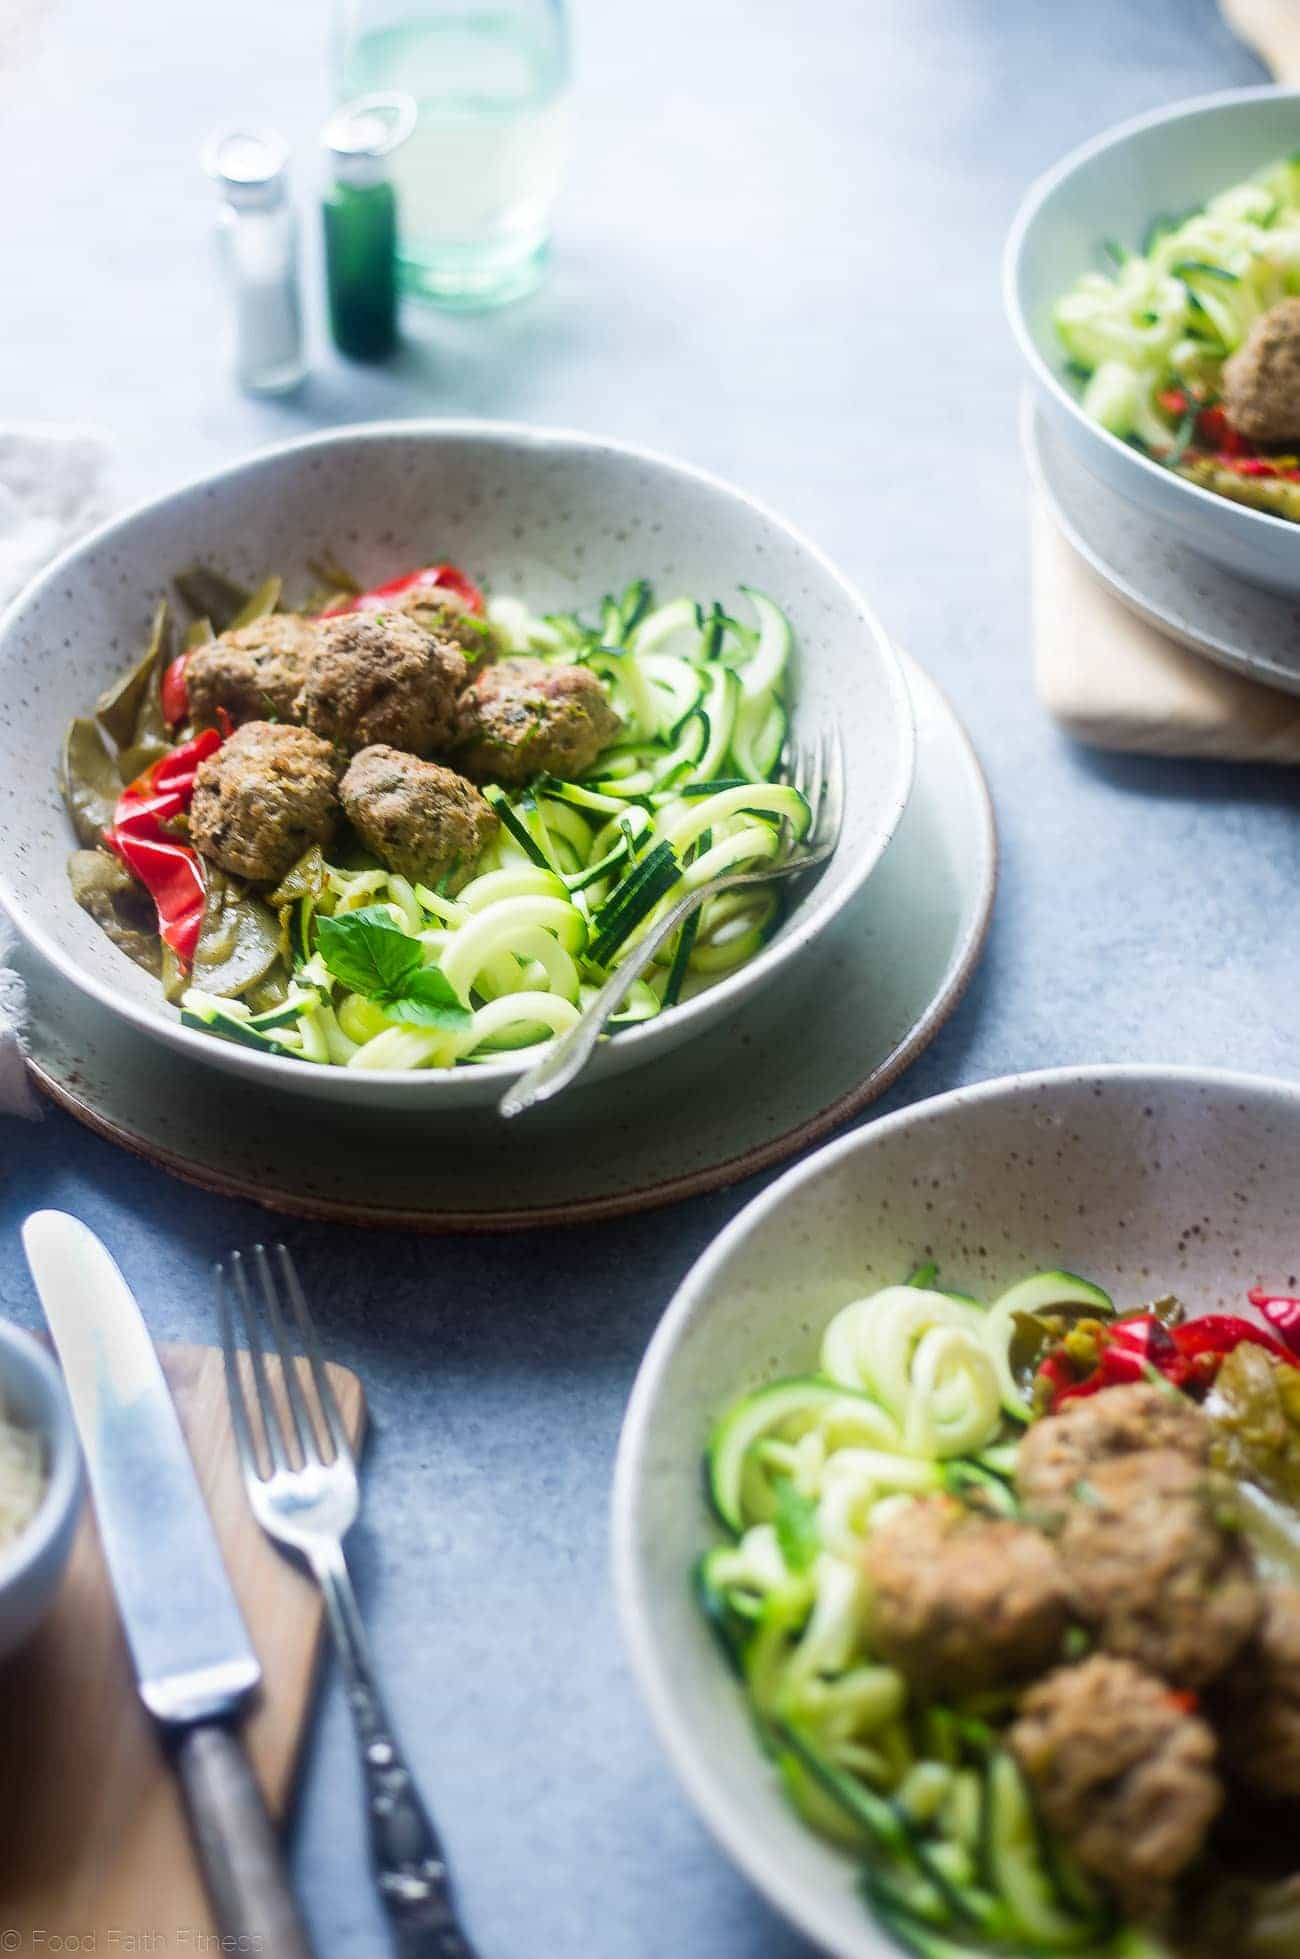 Whole30 Instant Pot Meatballs Primavera - These easy paleo Italian meatballs taste like pasta primavera! They're a healthy, gluten free and paleo spring meal for only 300 calories!   Foodfaithfitness.com   @FoodFaithFit